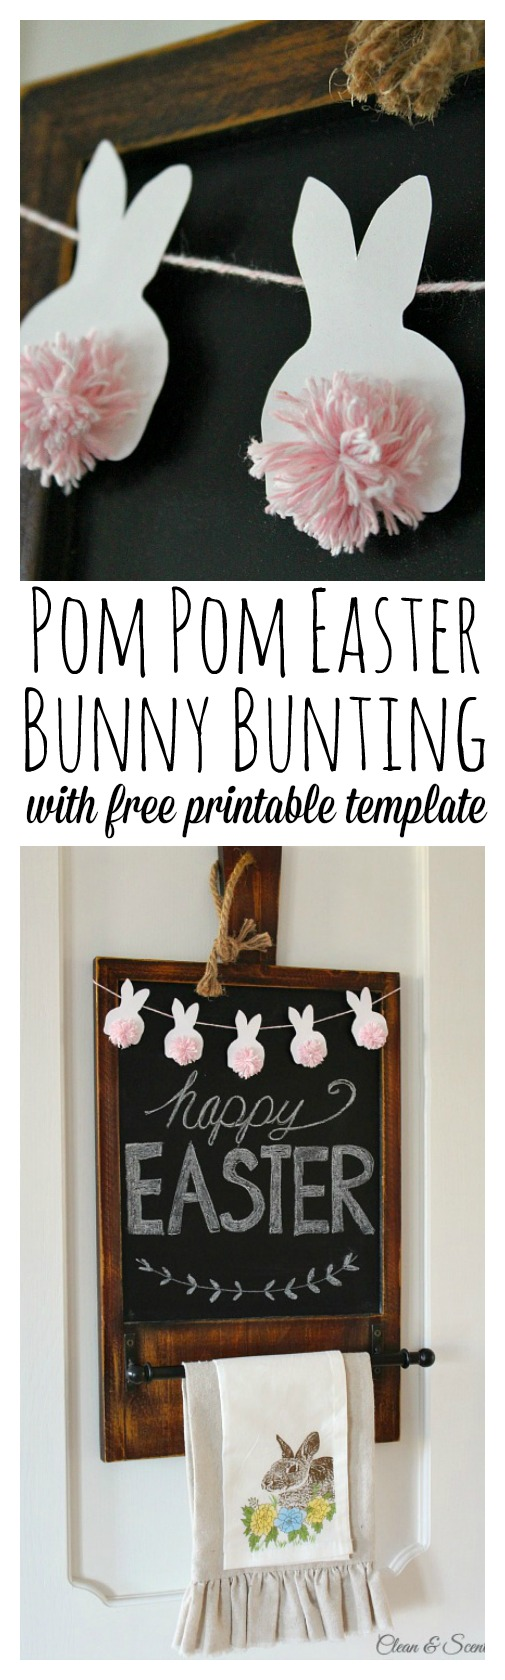 Easter Bunting with Pom Pom Bunnies.